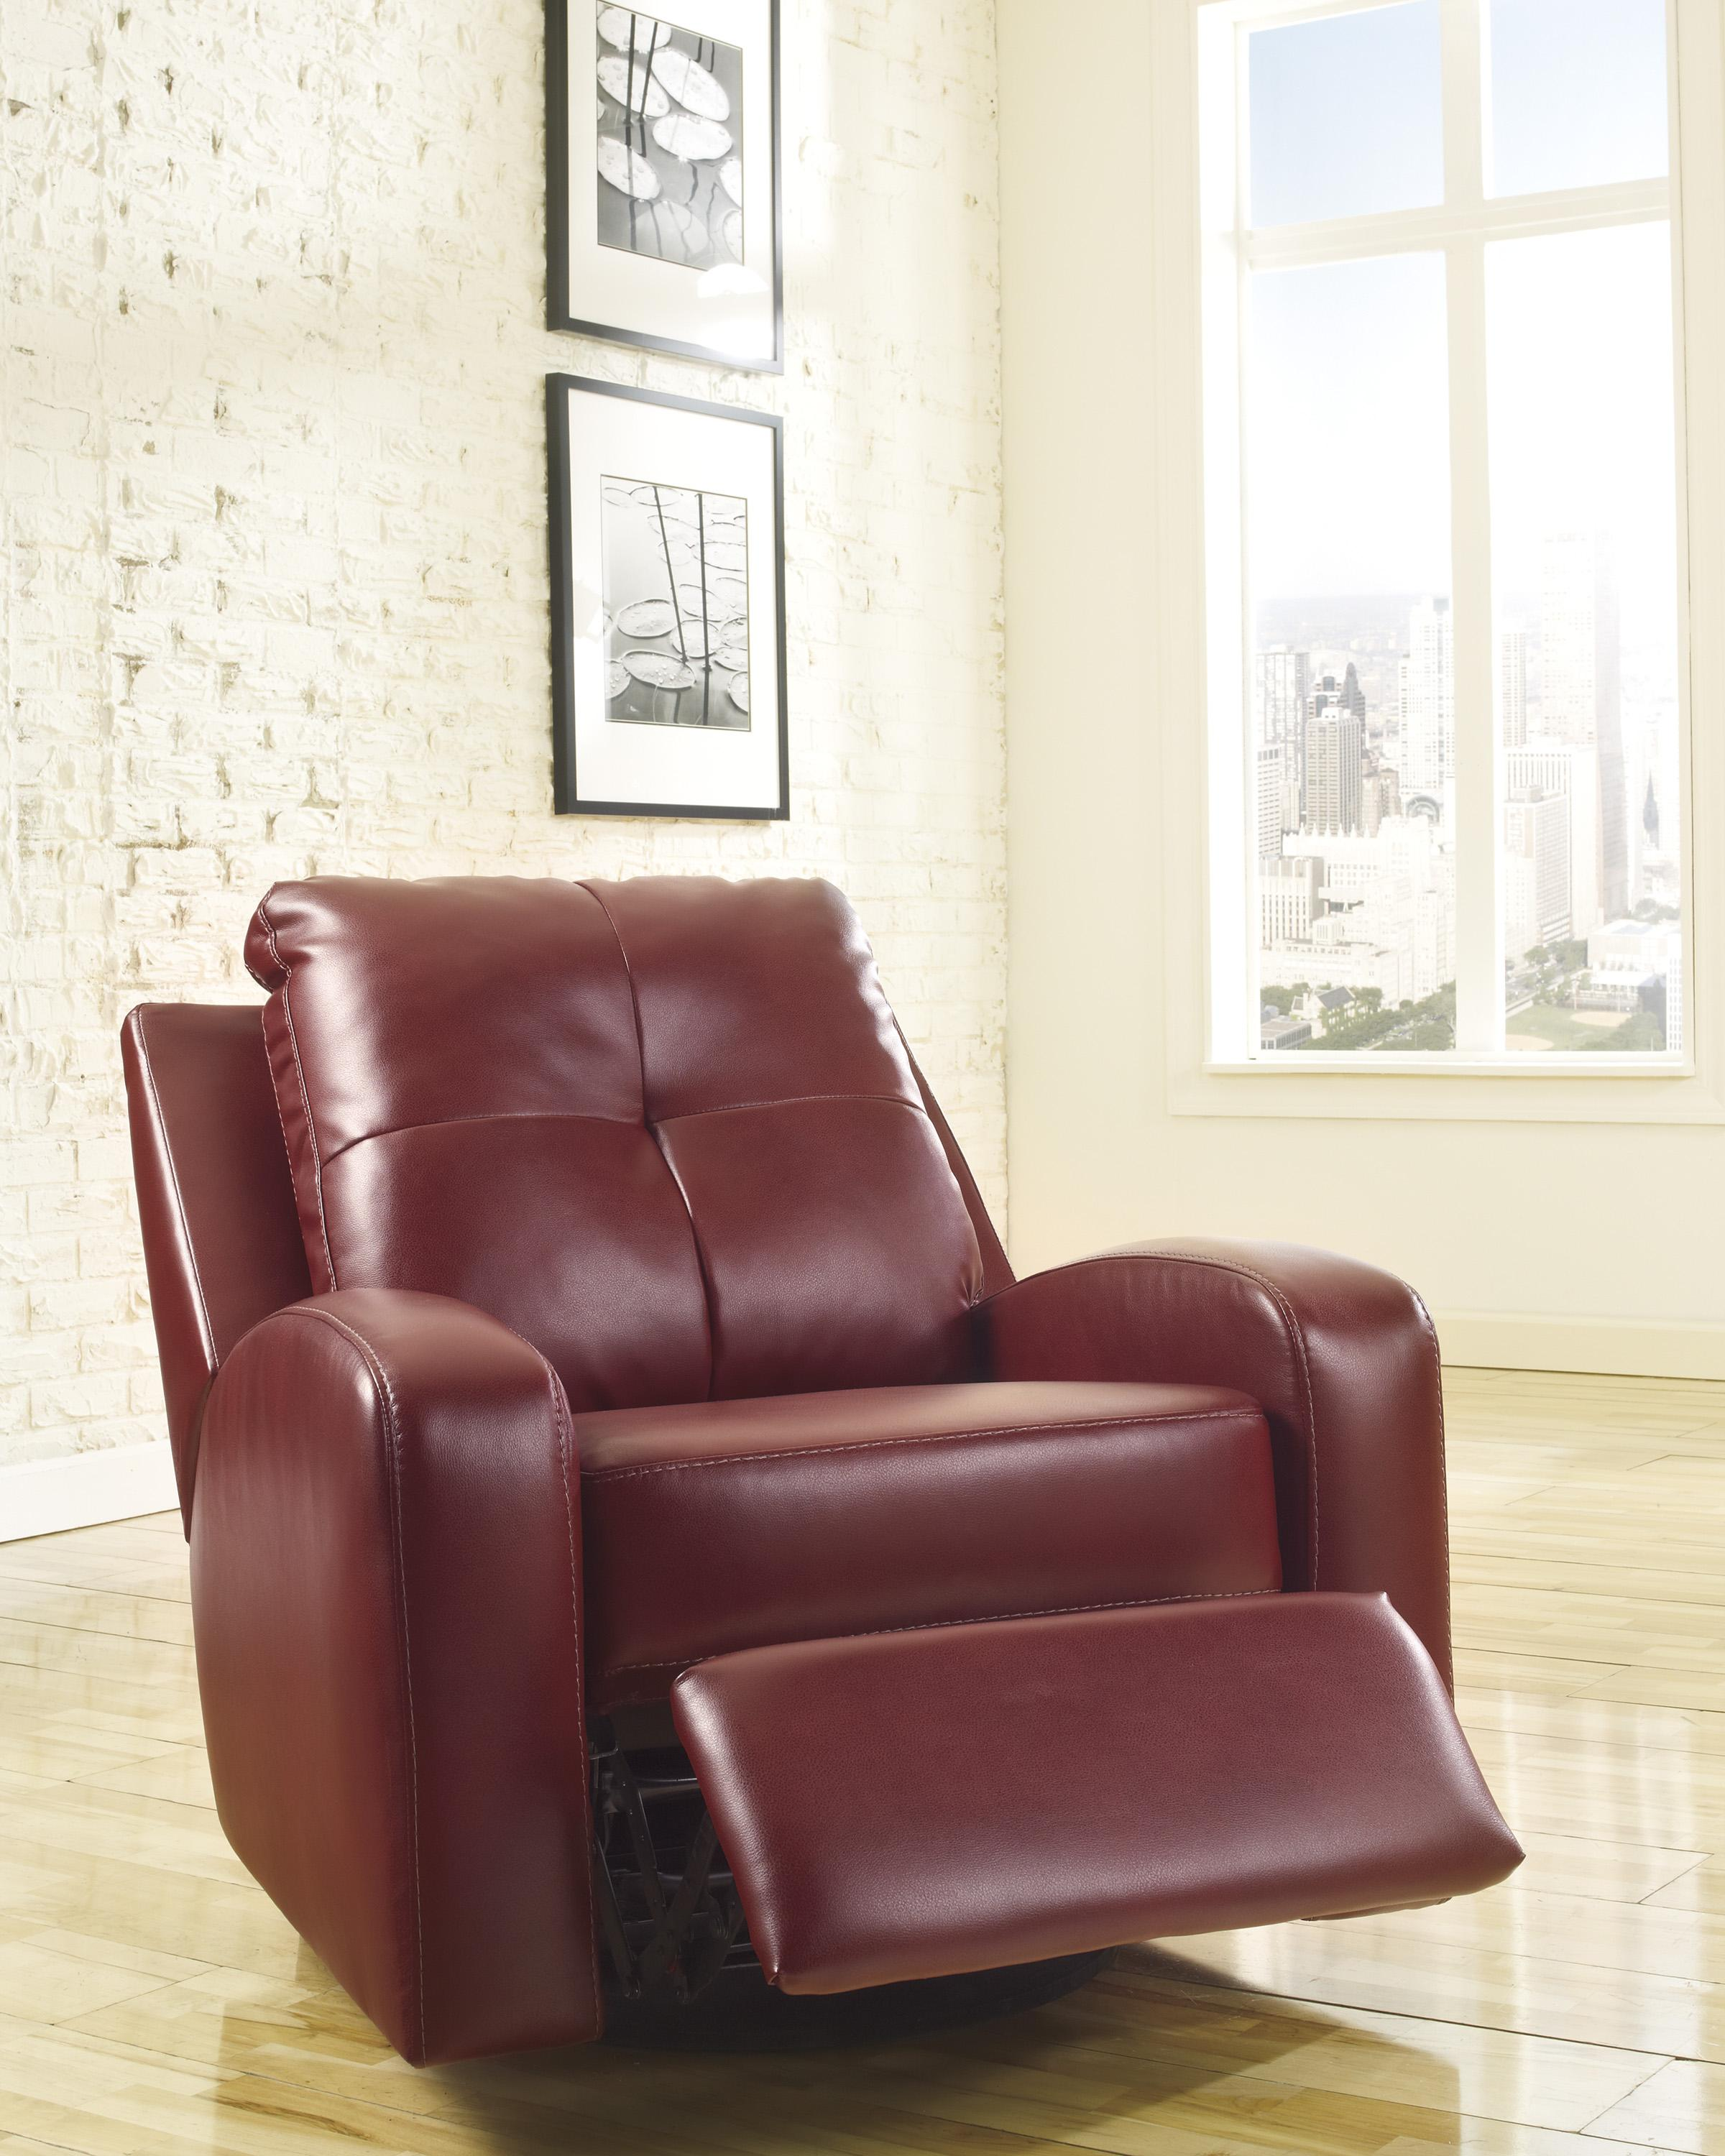 Signature Design By Ashley Mannix Durablend Red 2140261 Contemporary Swivel Glider Recliner